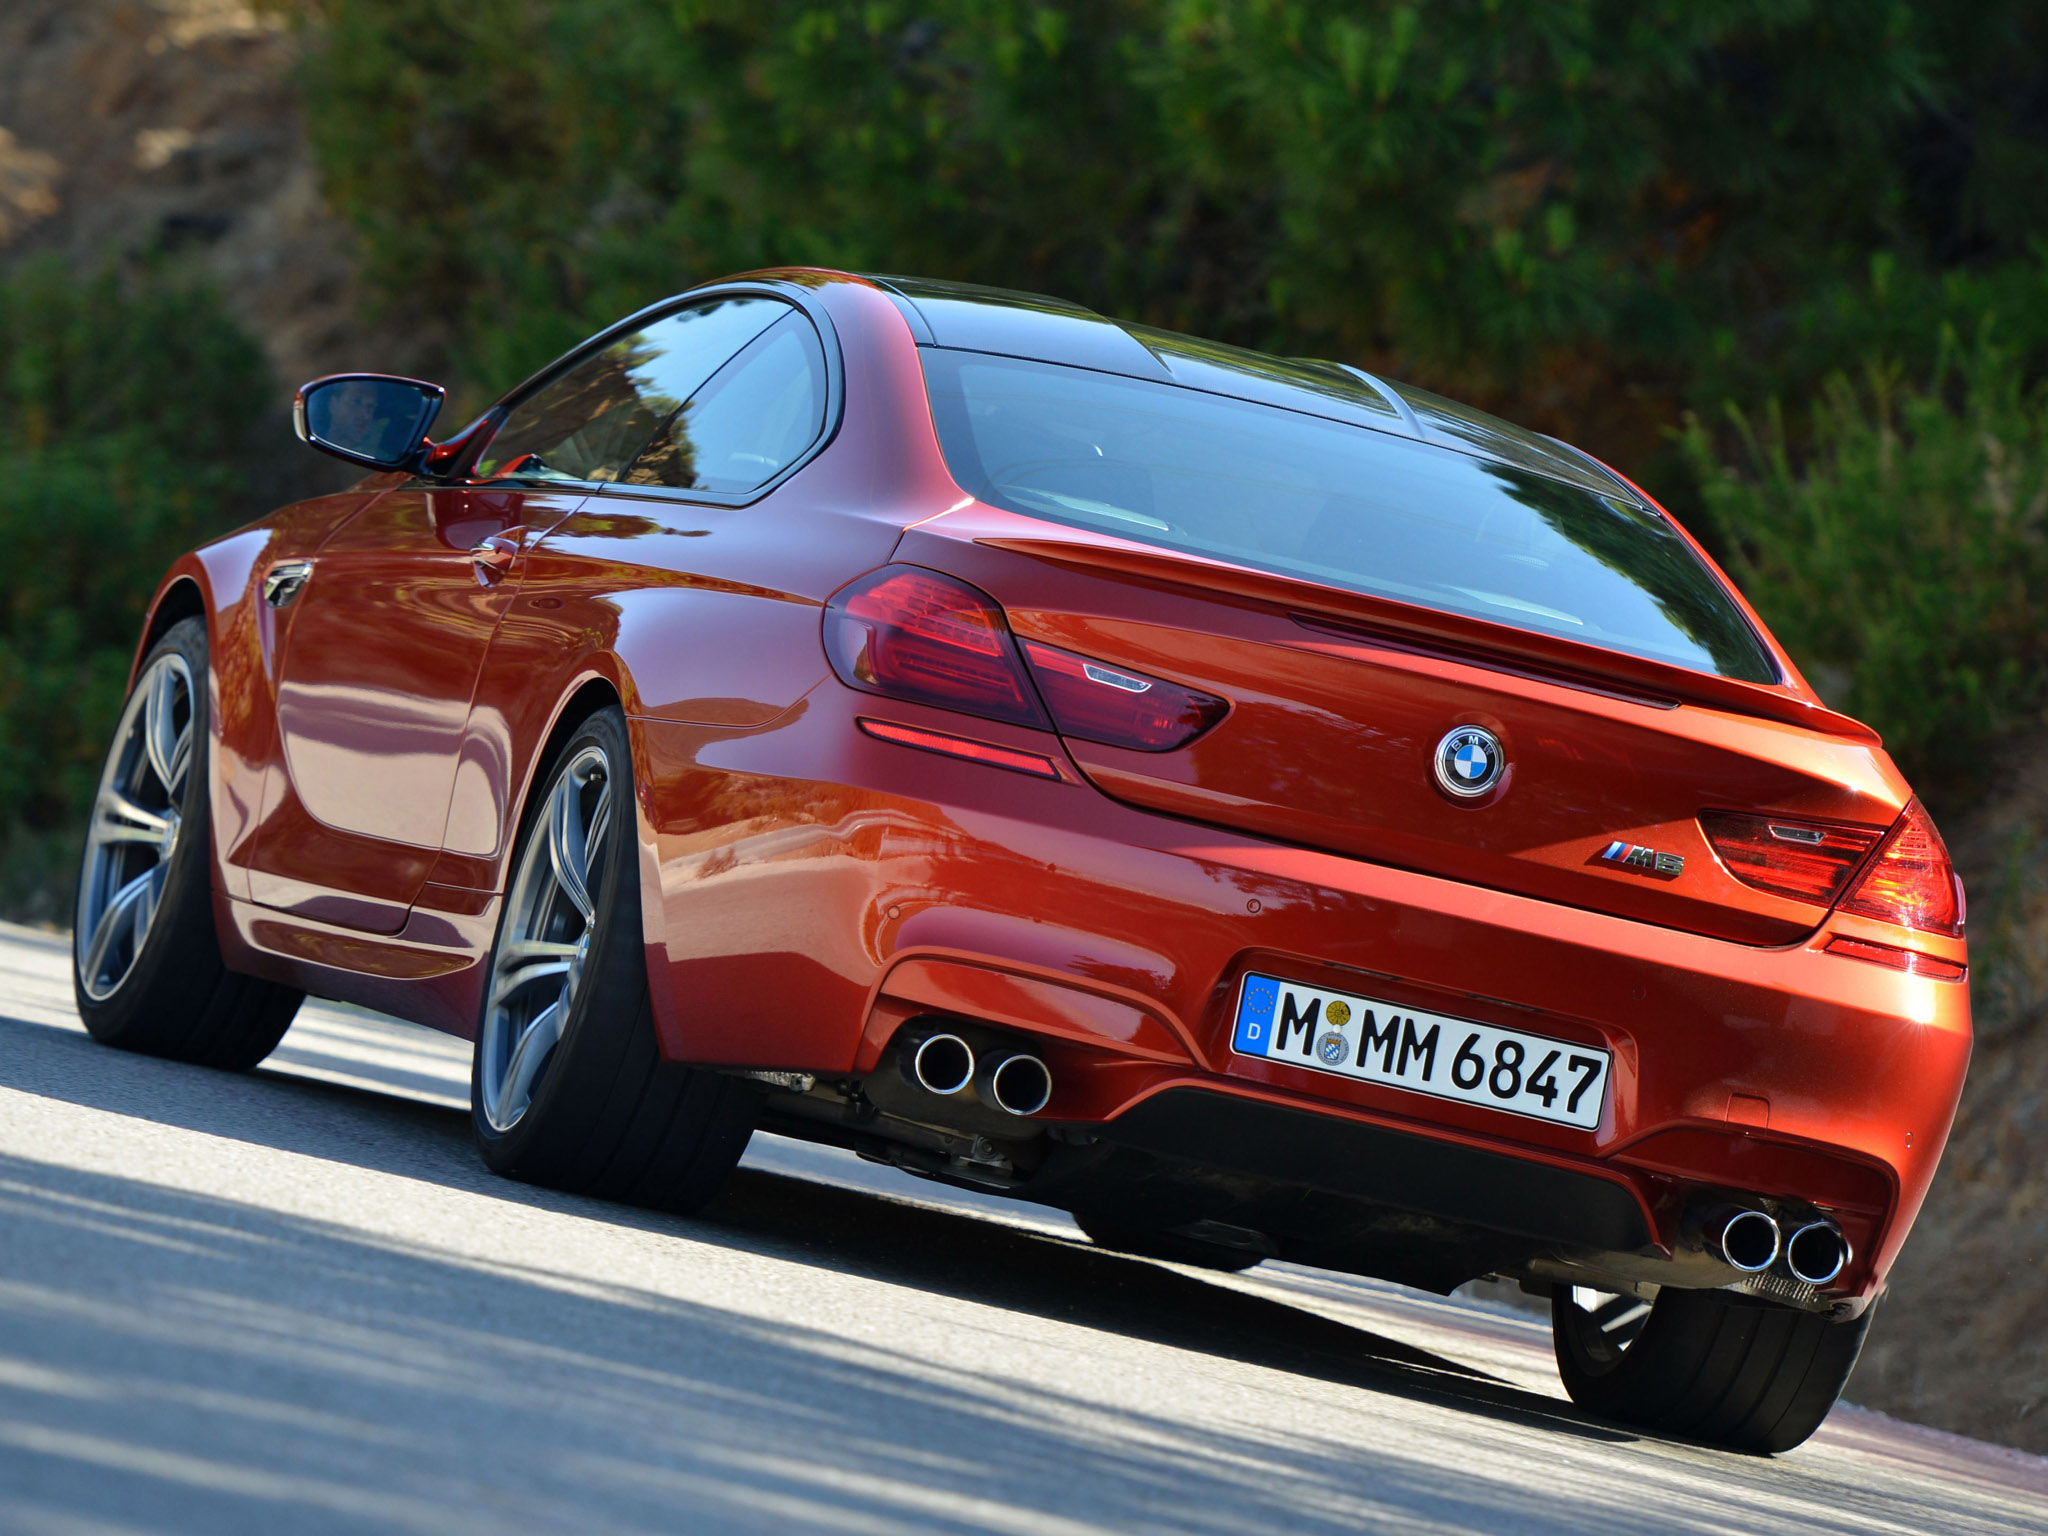 Bmw M6 F12 2012 Bmw M6 F12 2012 Photo 15 Car In Pictures